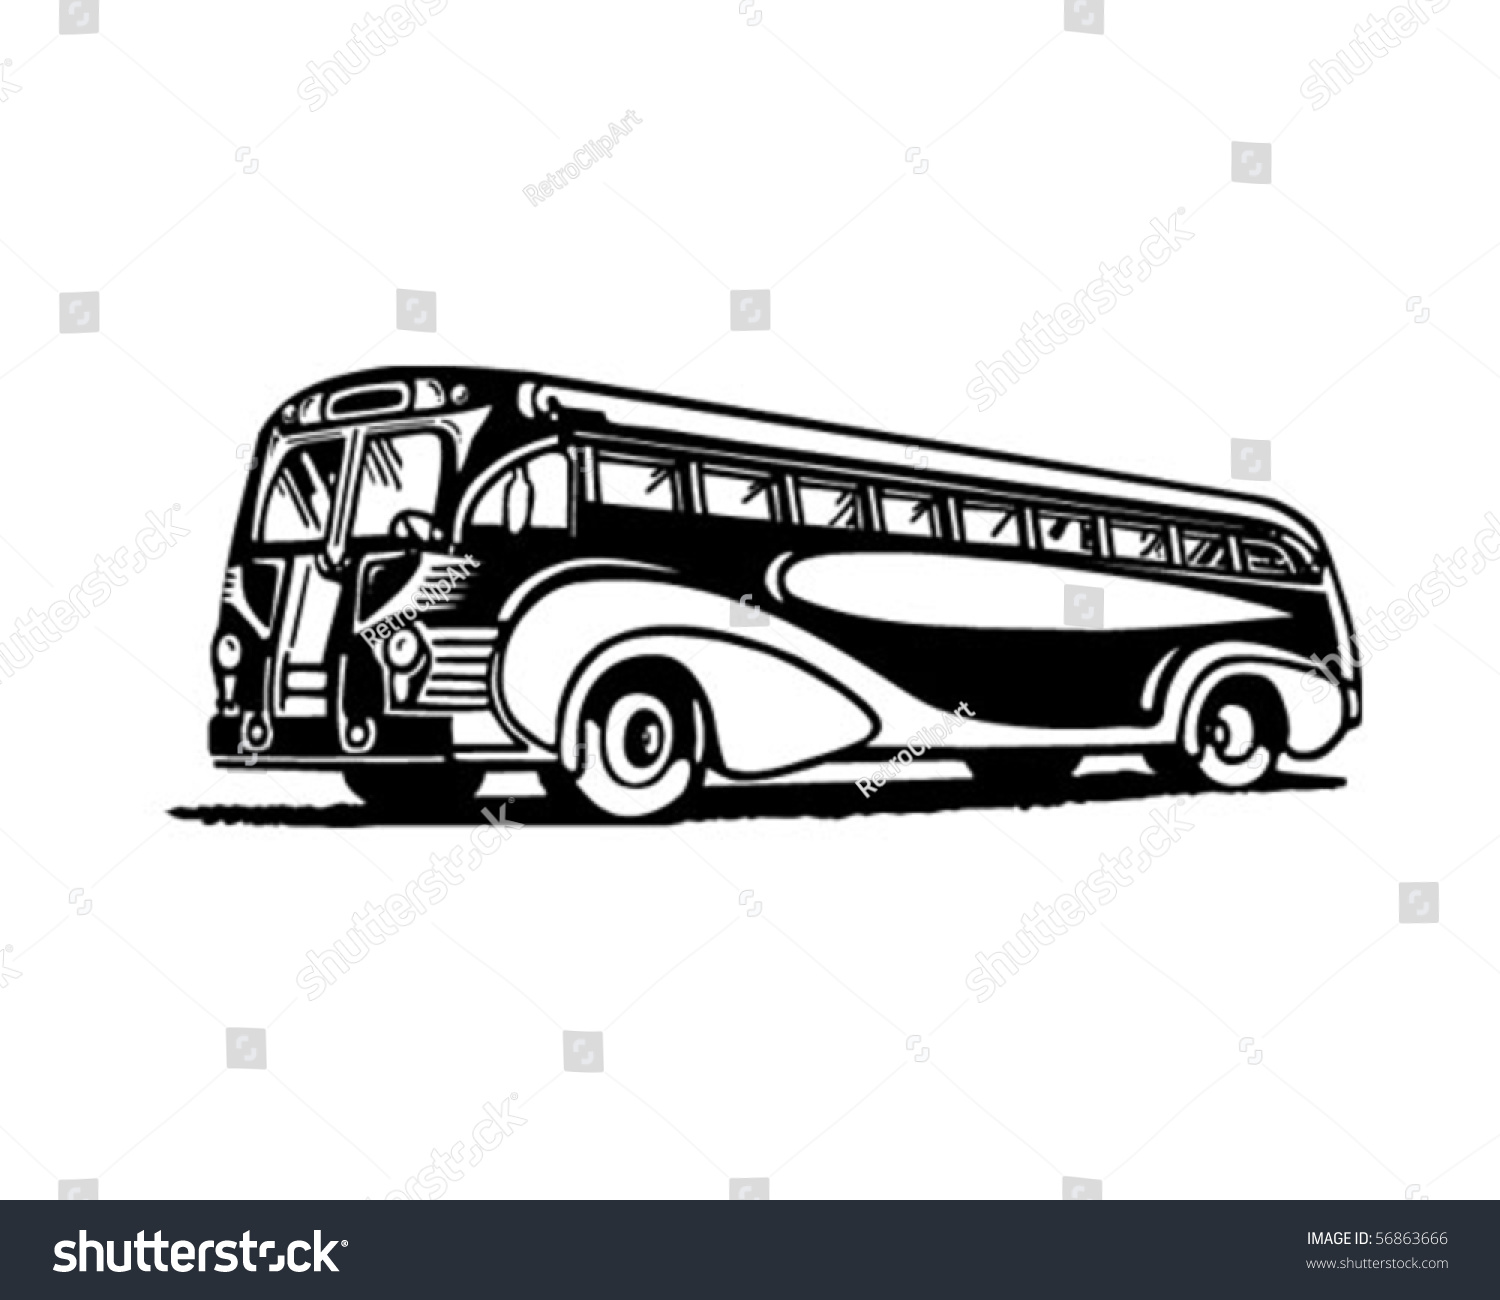 Greyhound Bus Clipart Vintage bus stock photos, images, & pictures ...